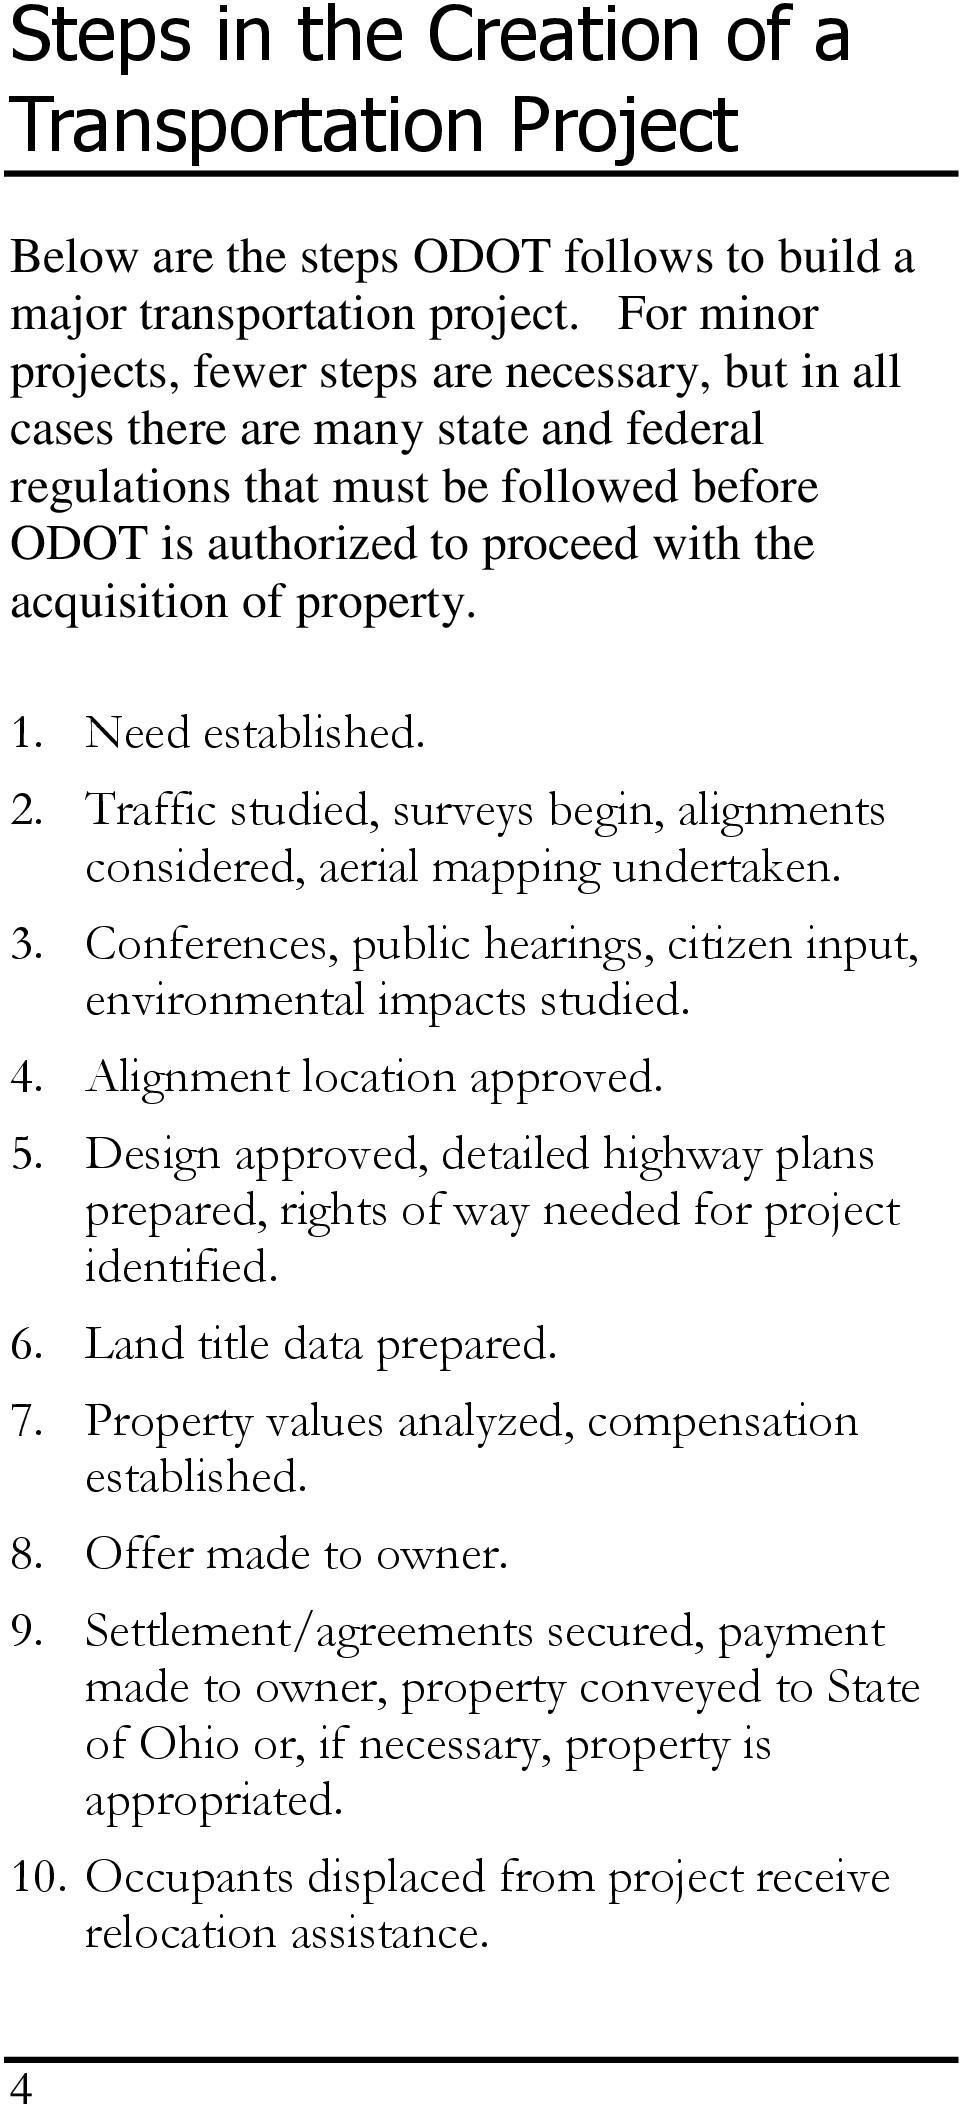 property. 1. Need established. 2. Traffic studied, surveys begin, alignments considered, aerial mapping undertaken. 3. Conferences, public hearings, citizen input, environmental impacts studied. 4.